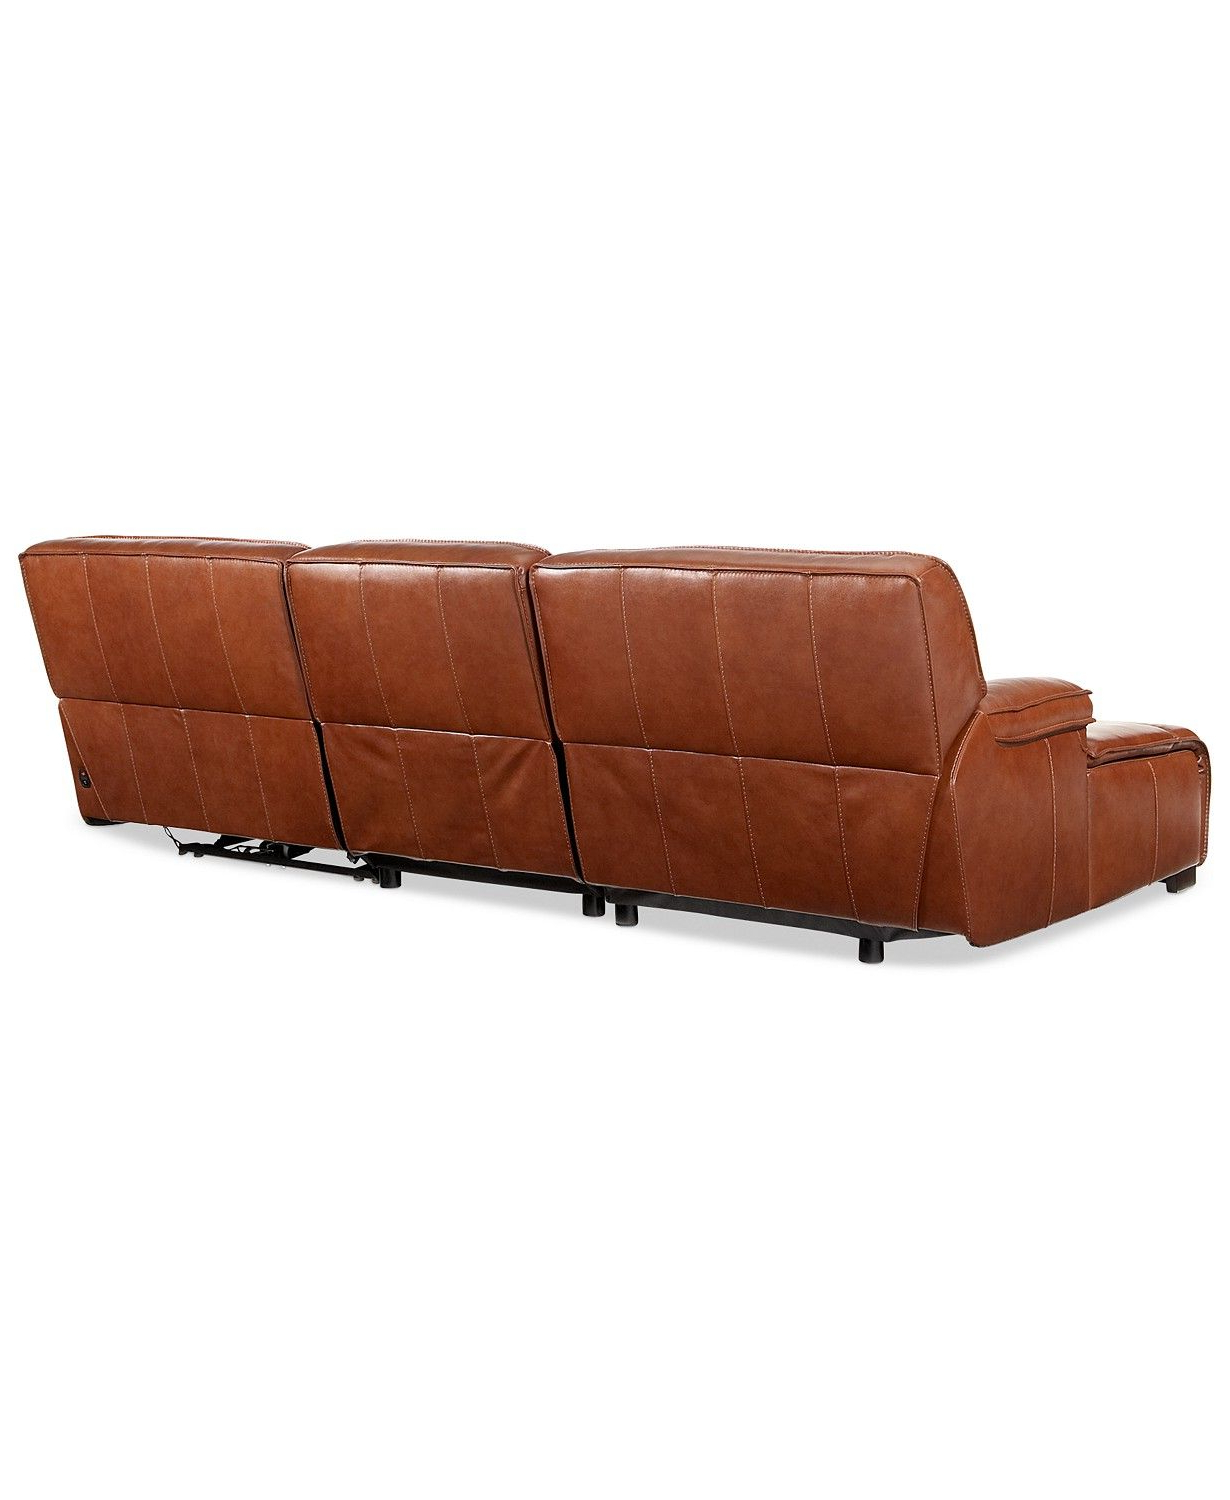 Trendy Furniture Beckett 3 Pc Leather Sectional Sofa With Chaise With 3Pc Miles Leather Sectional Sofas With Chaise (View 8 of 25)